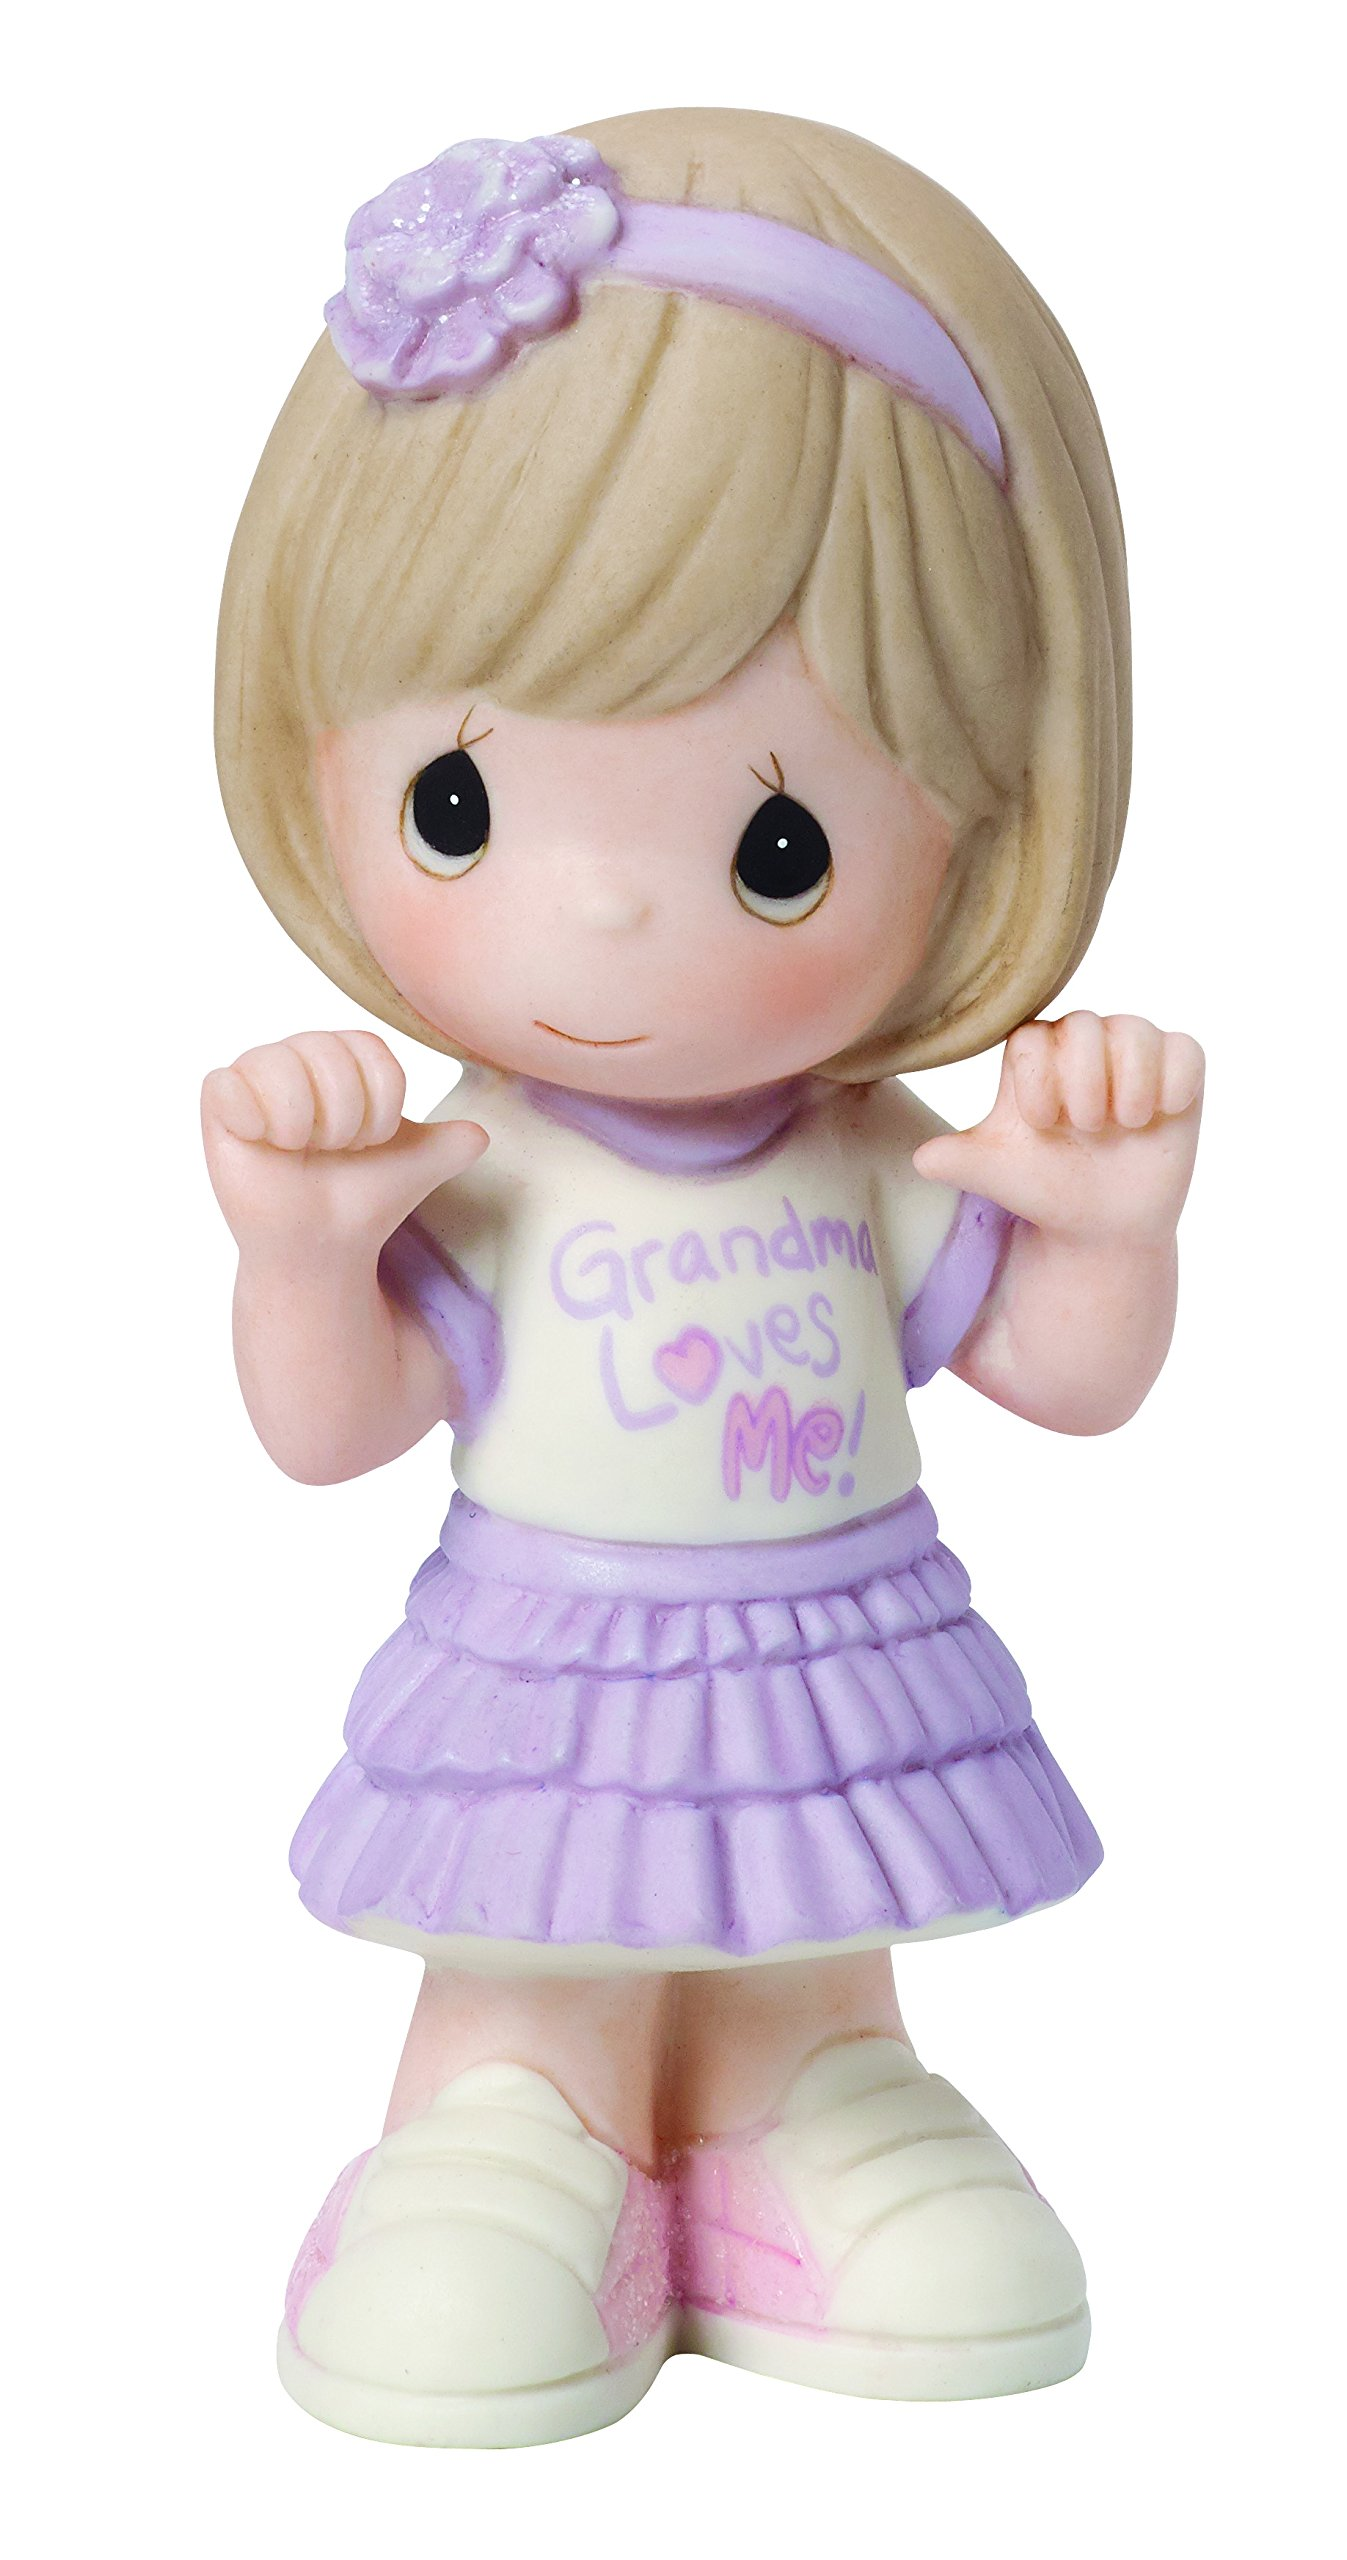 Precious Moments, Grandma Loves Me, Bisque Porcelain Figurine, Girl, 154032 by Precious Moments (Image #1)